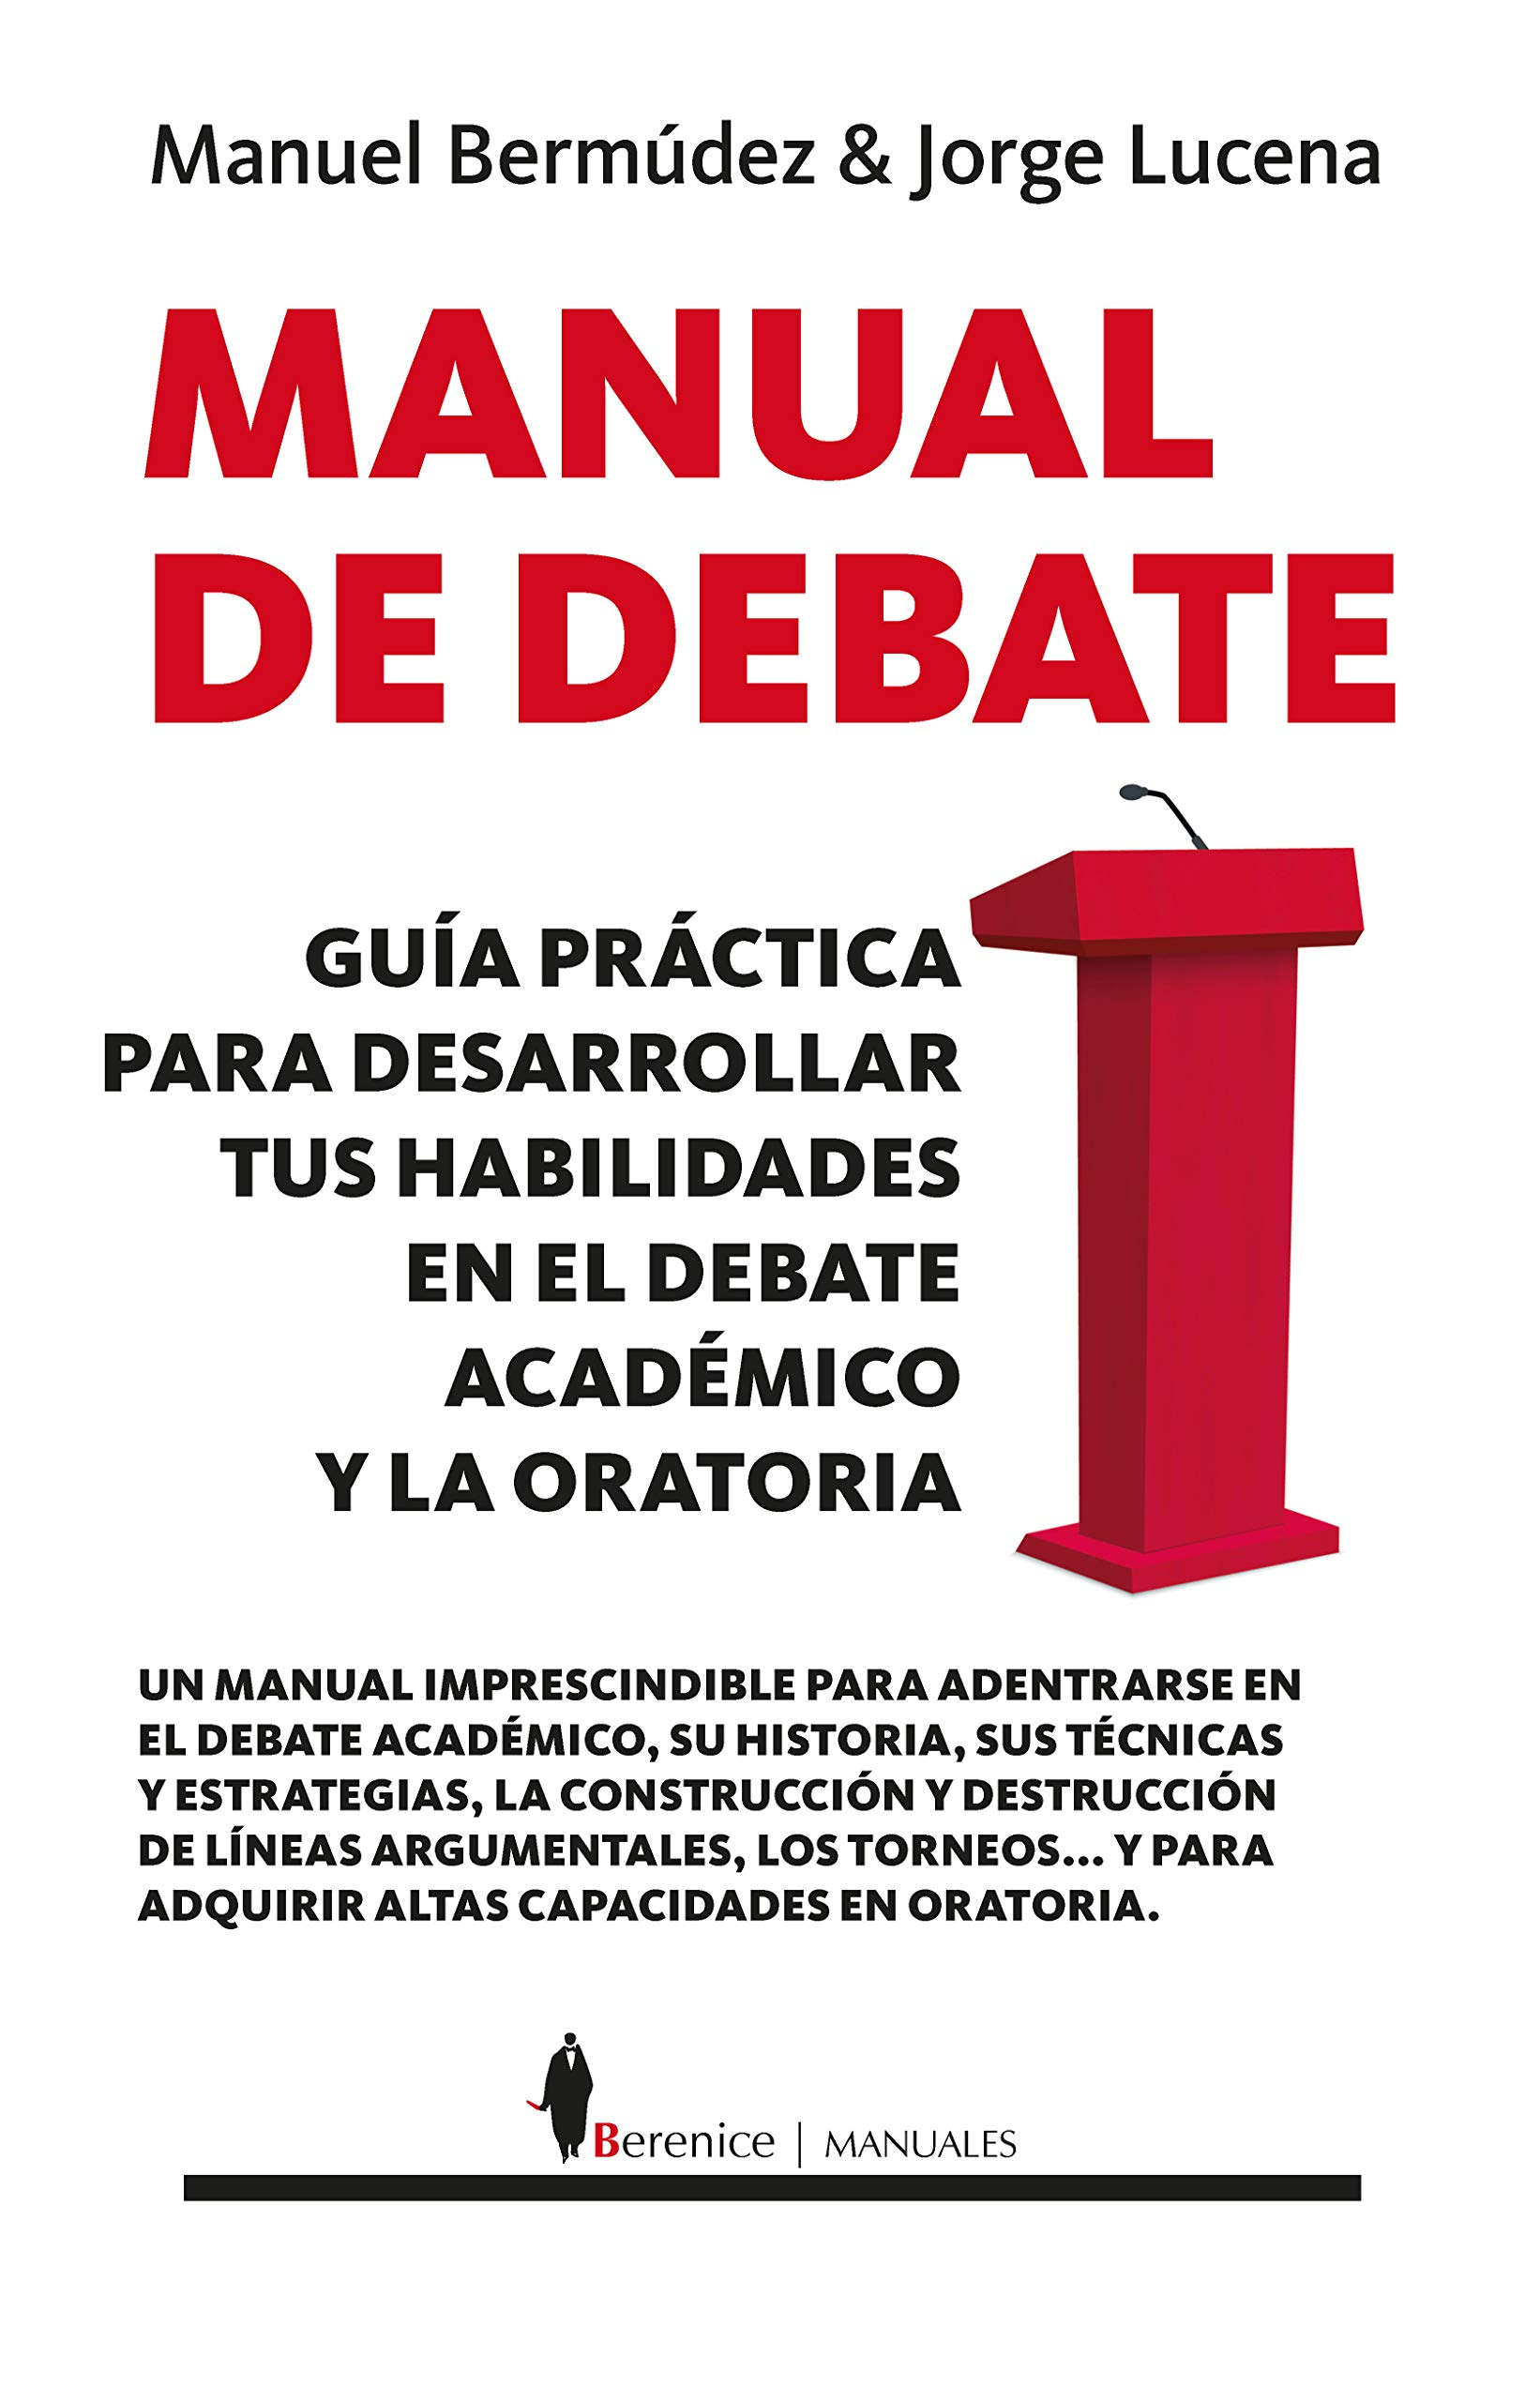 Manual de debate (Manuales)